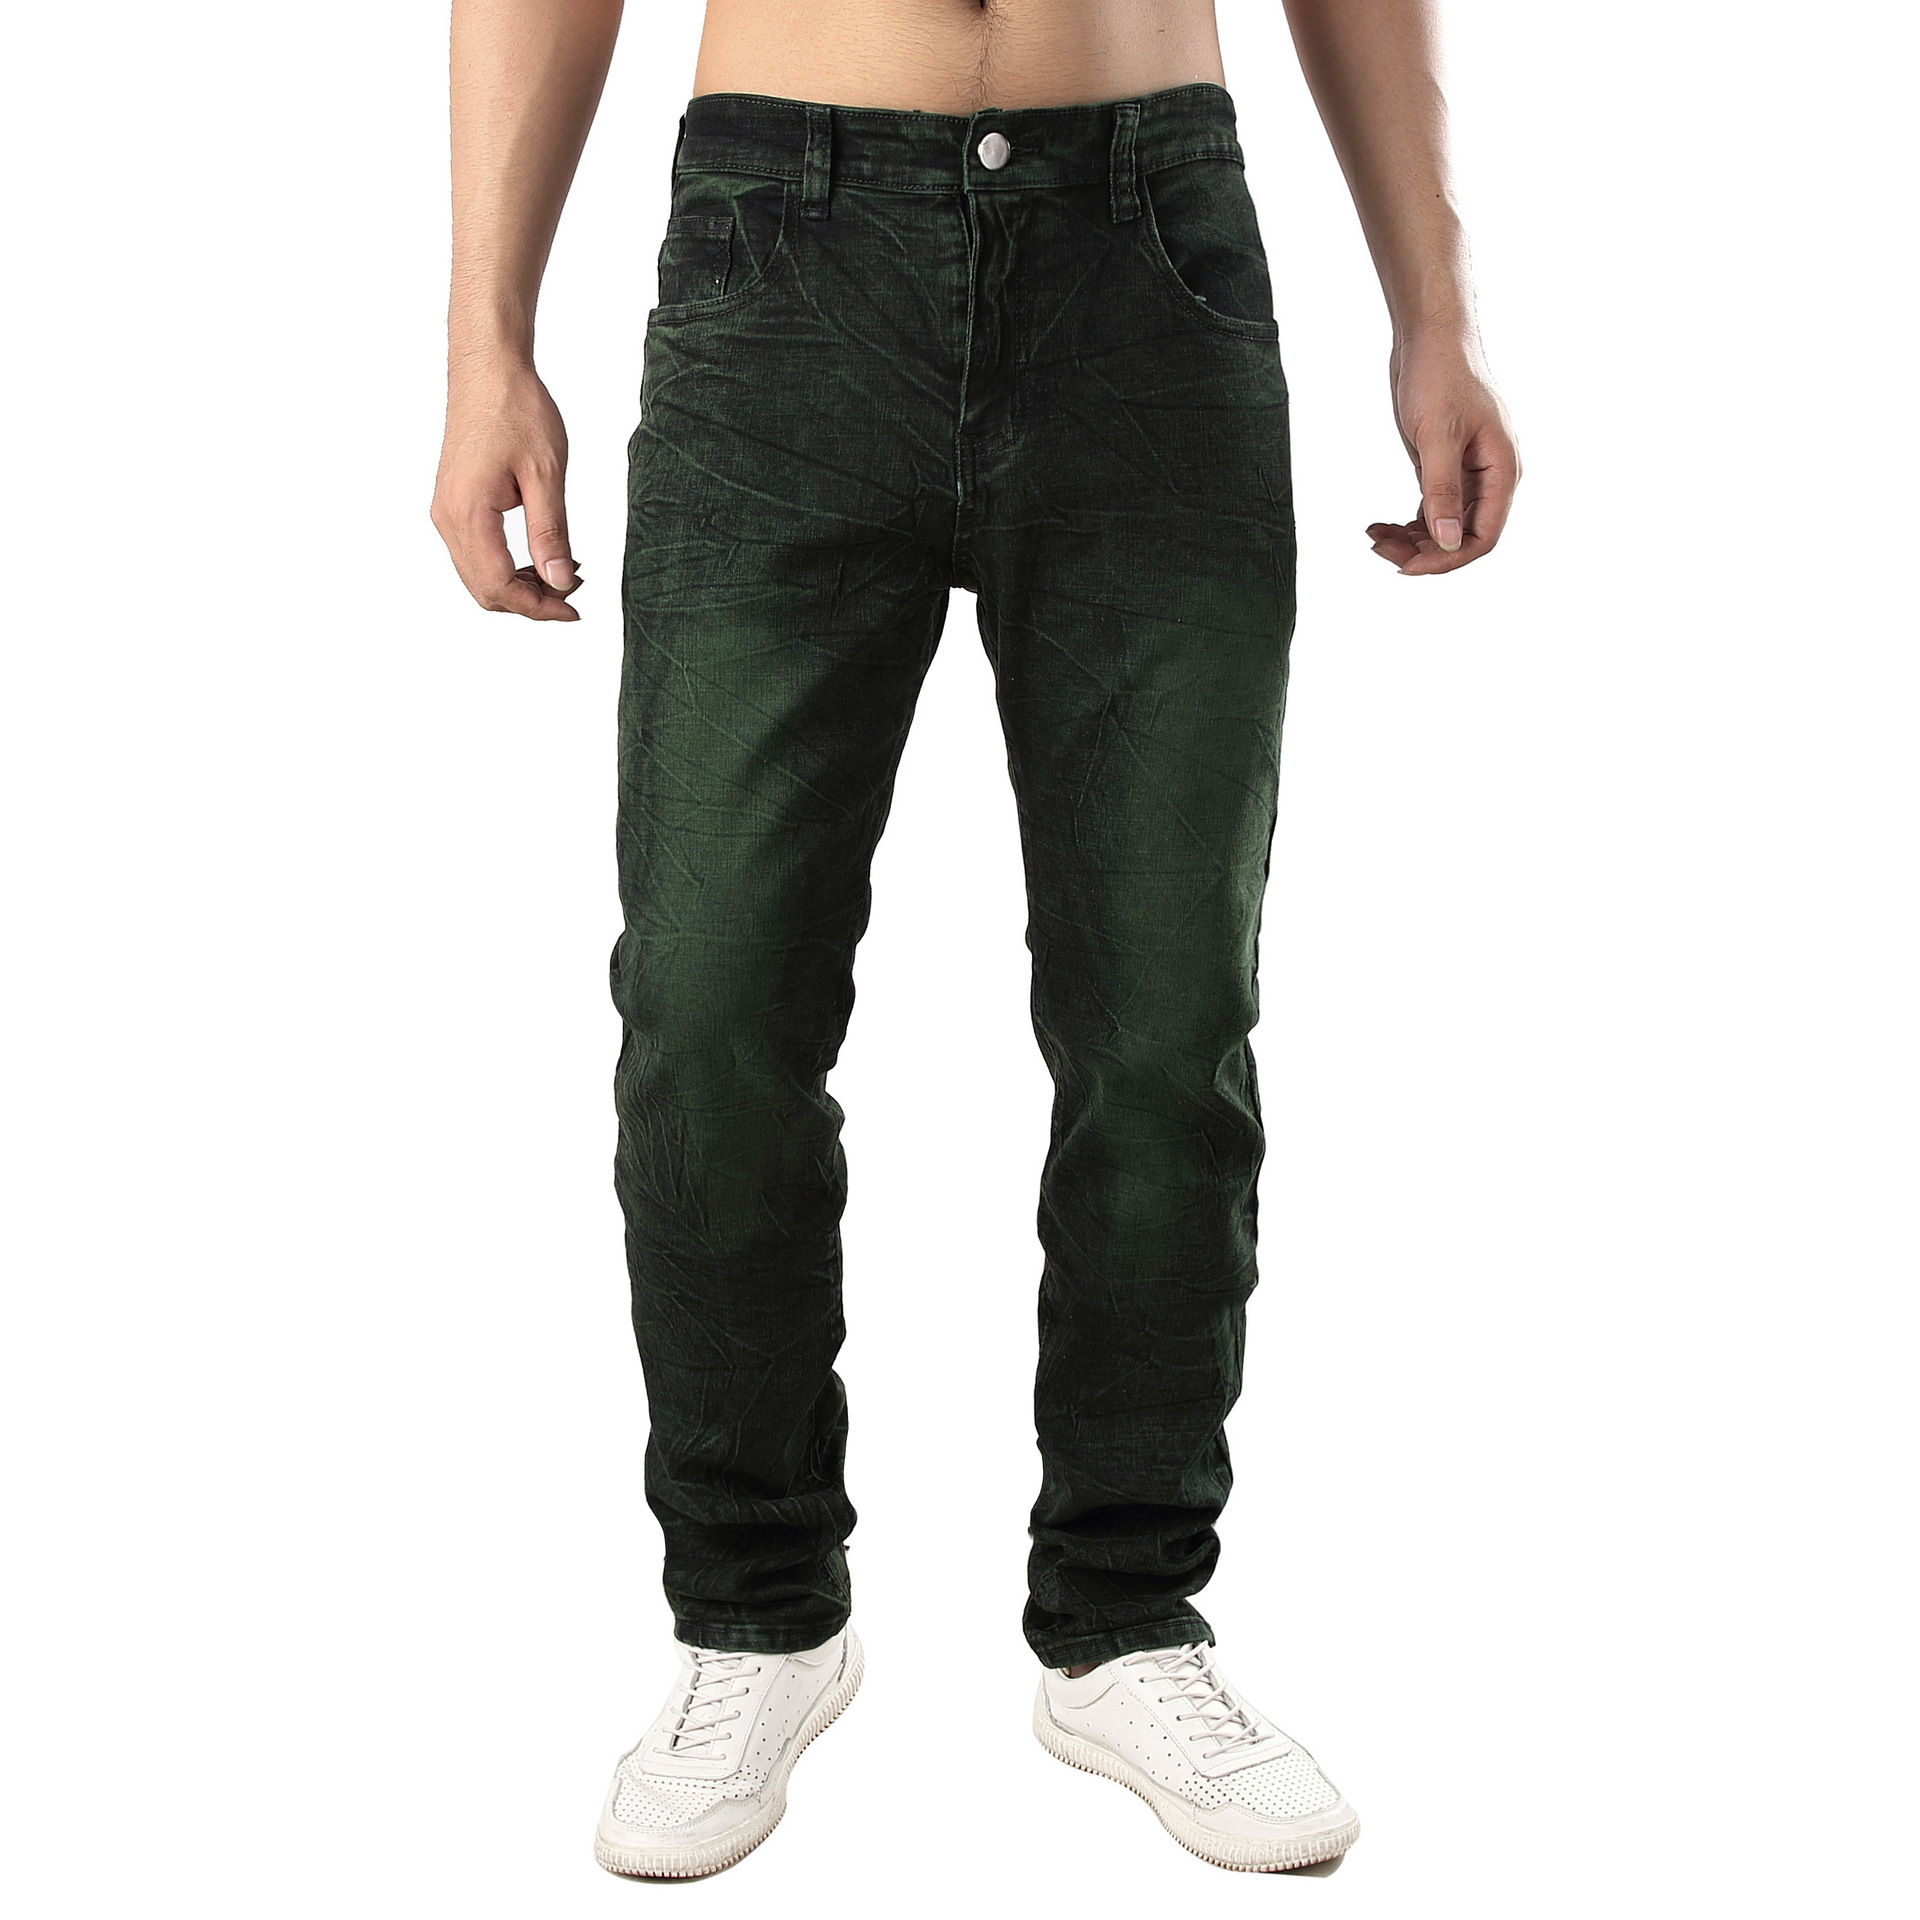 2019 Hot Selling Cowboy Trousers Men Elasticity Slim Fit Jeans Dyeing Gray-green Cool Cowboy